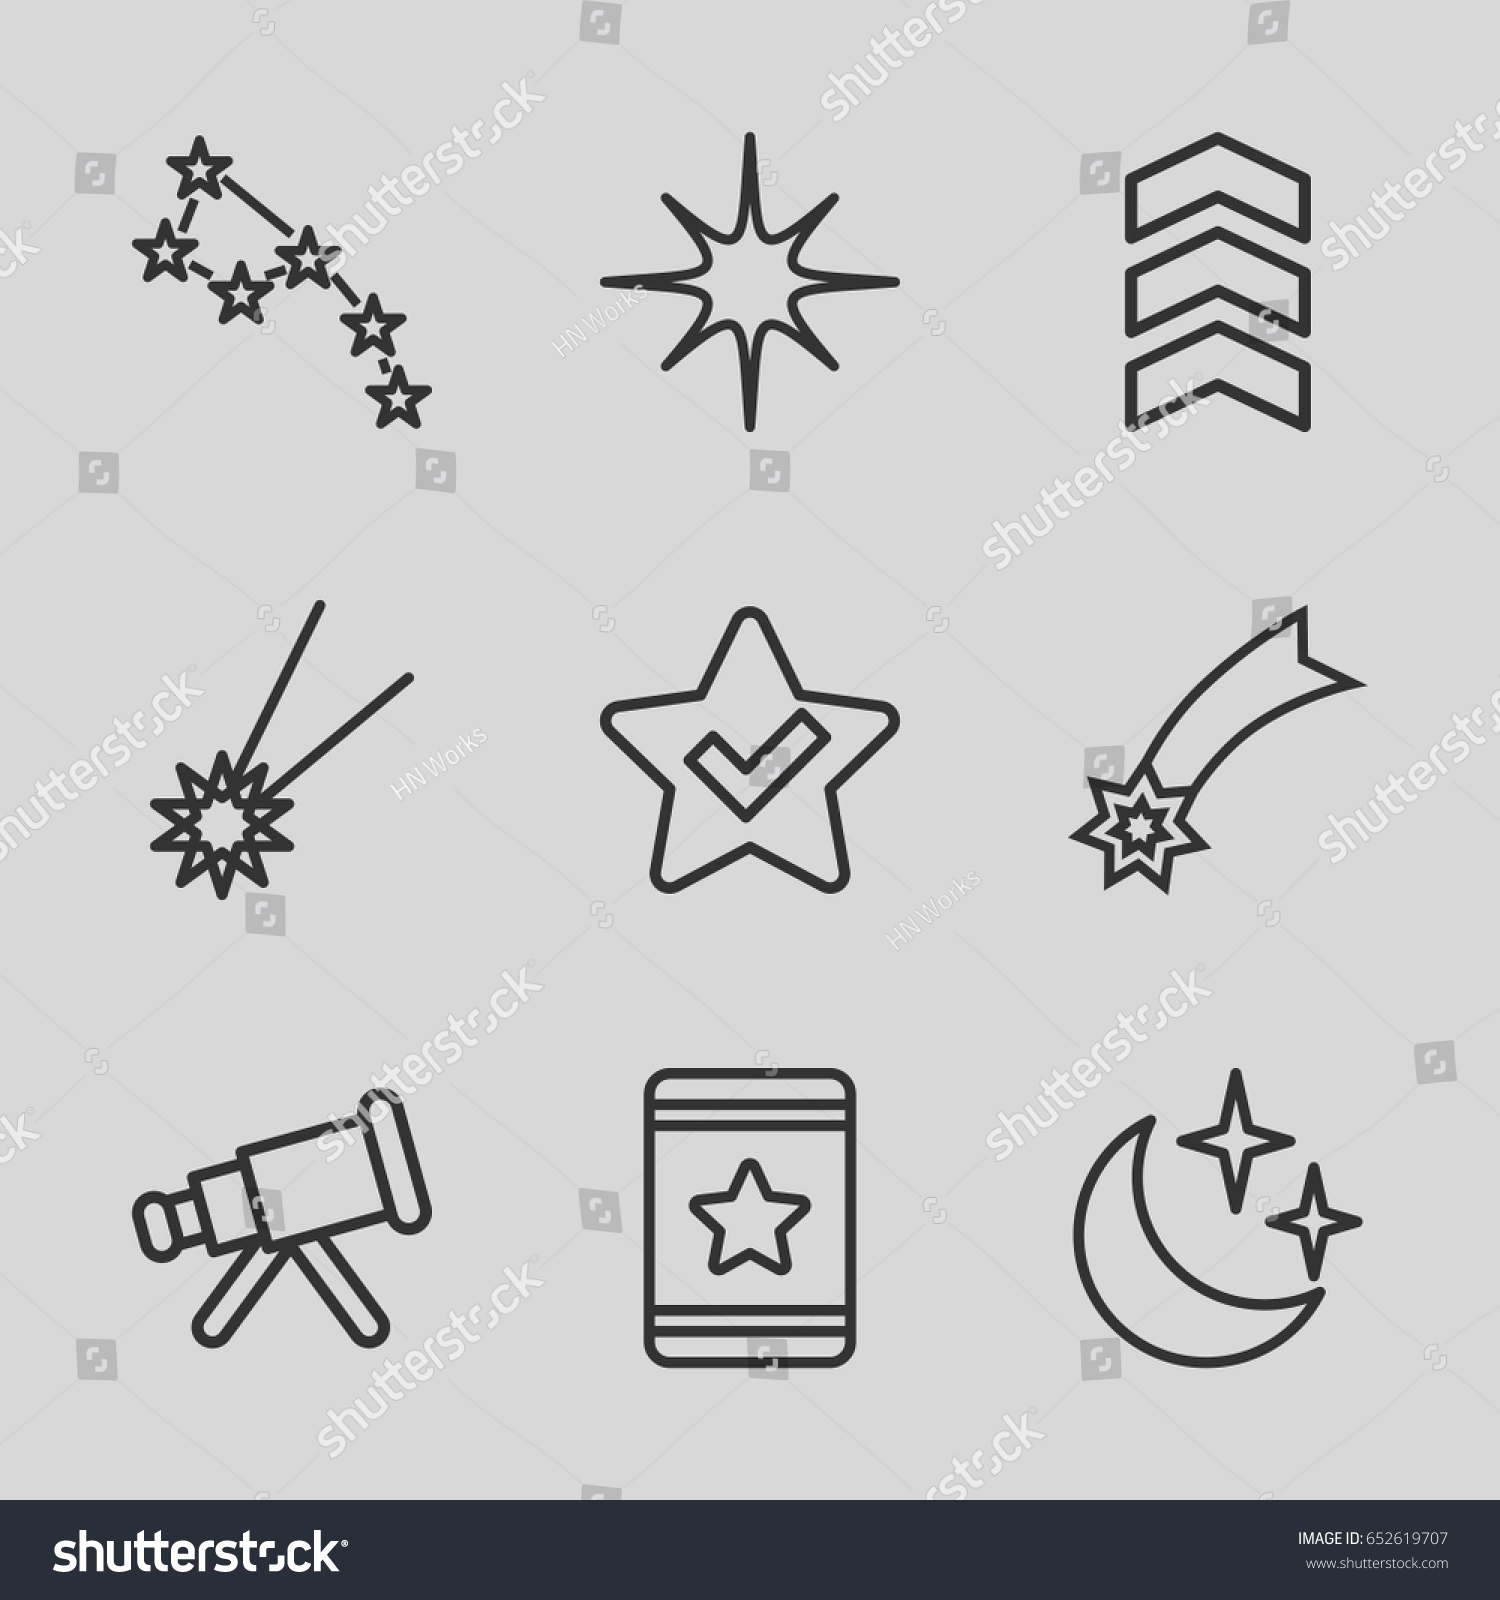 Stars icons set set 9 stars stock vector 652619707 shutterstock stars icons set set of 9 stars outline icons such as star moon and sciox Gallery